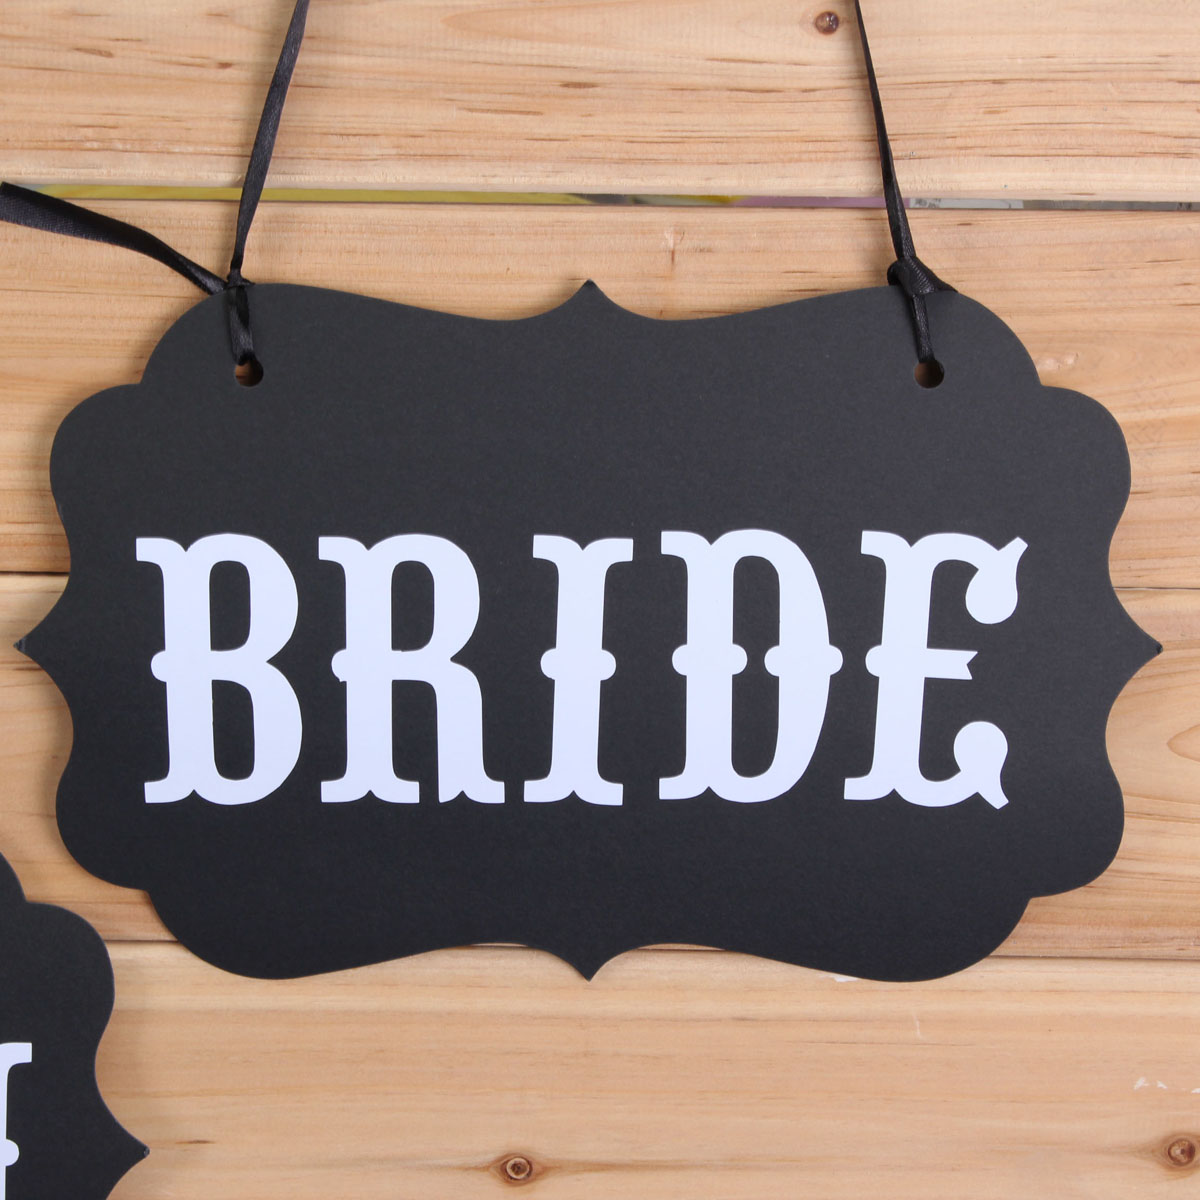 DIY GROOM BRIDE Ribbon Wedding Chair Garland Party Decoration Photo Props Accessory